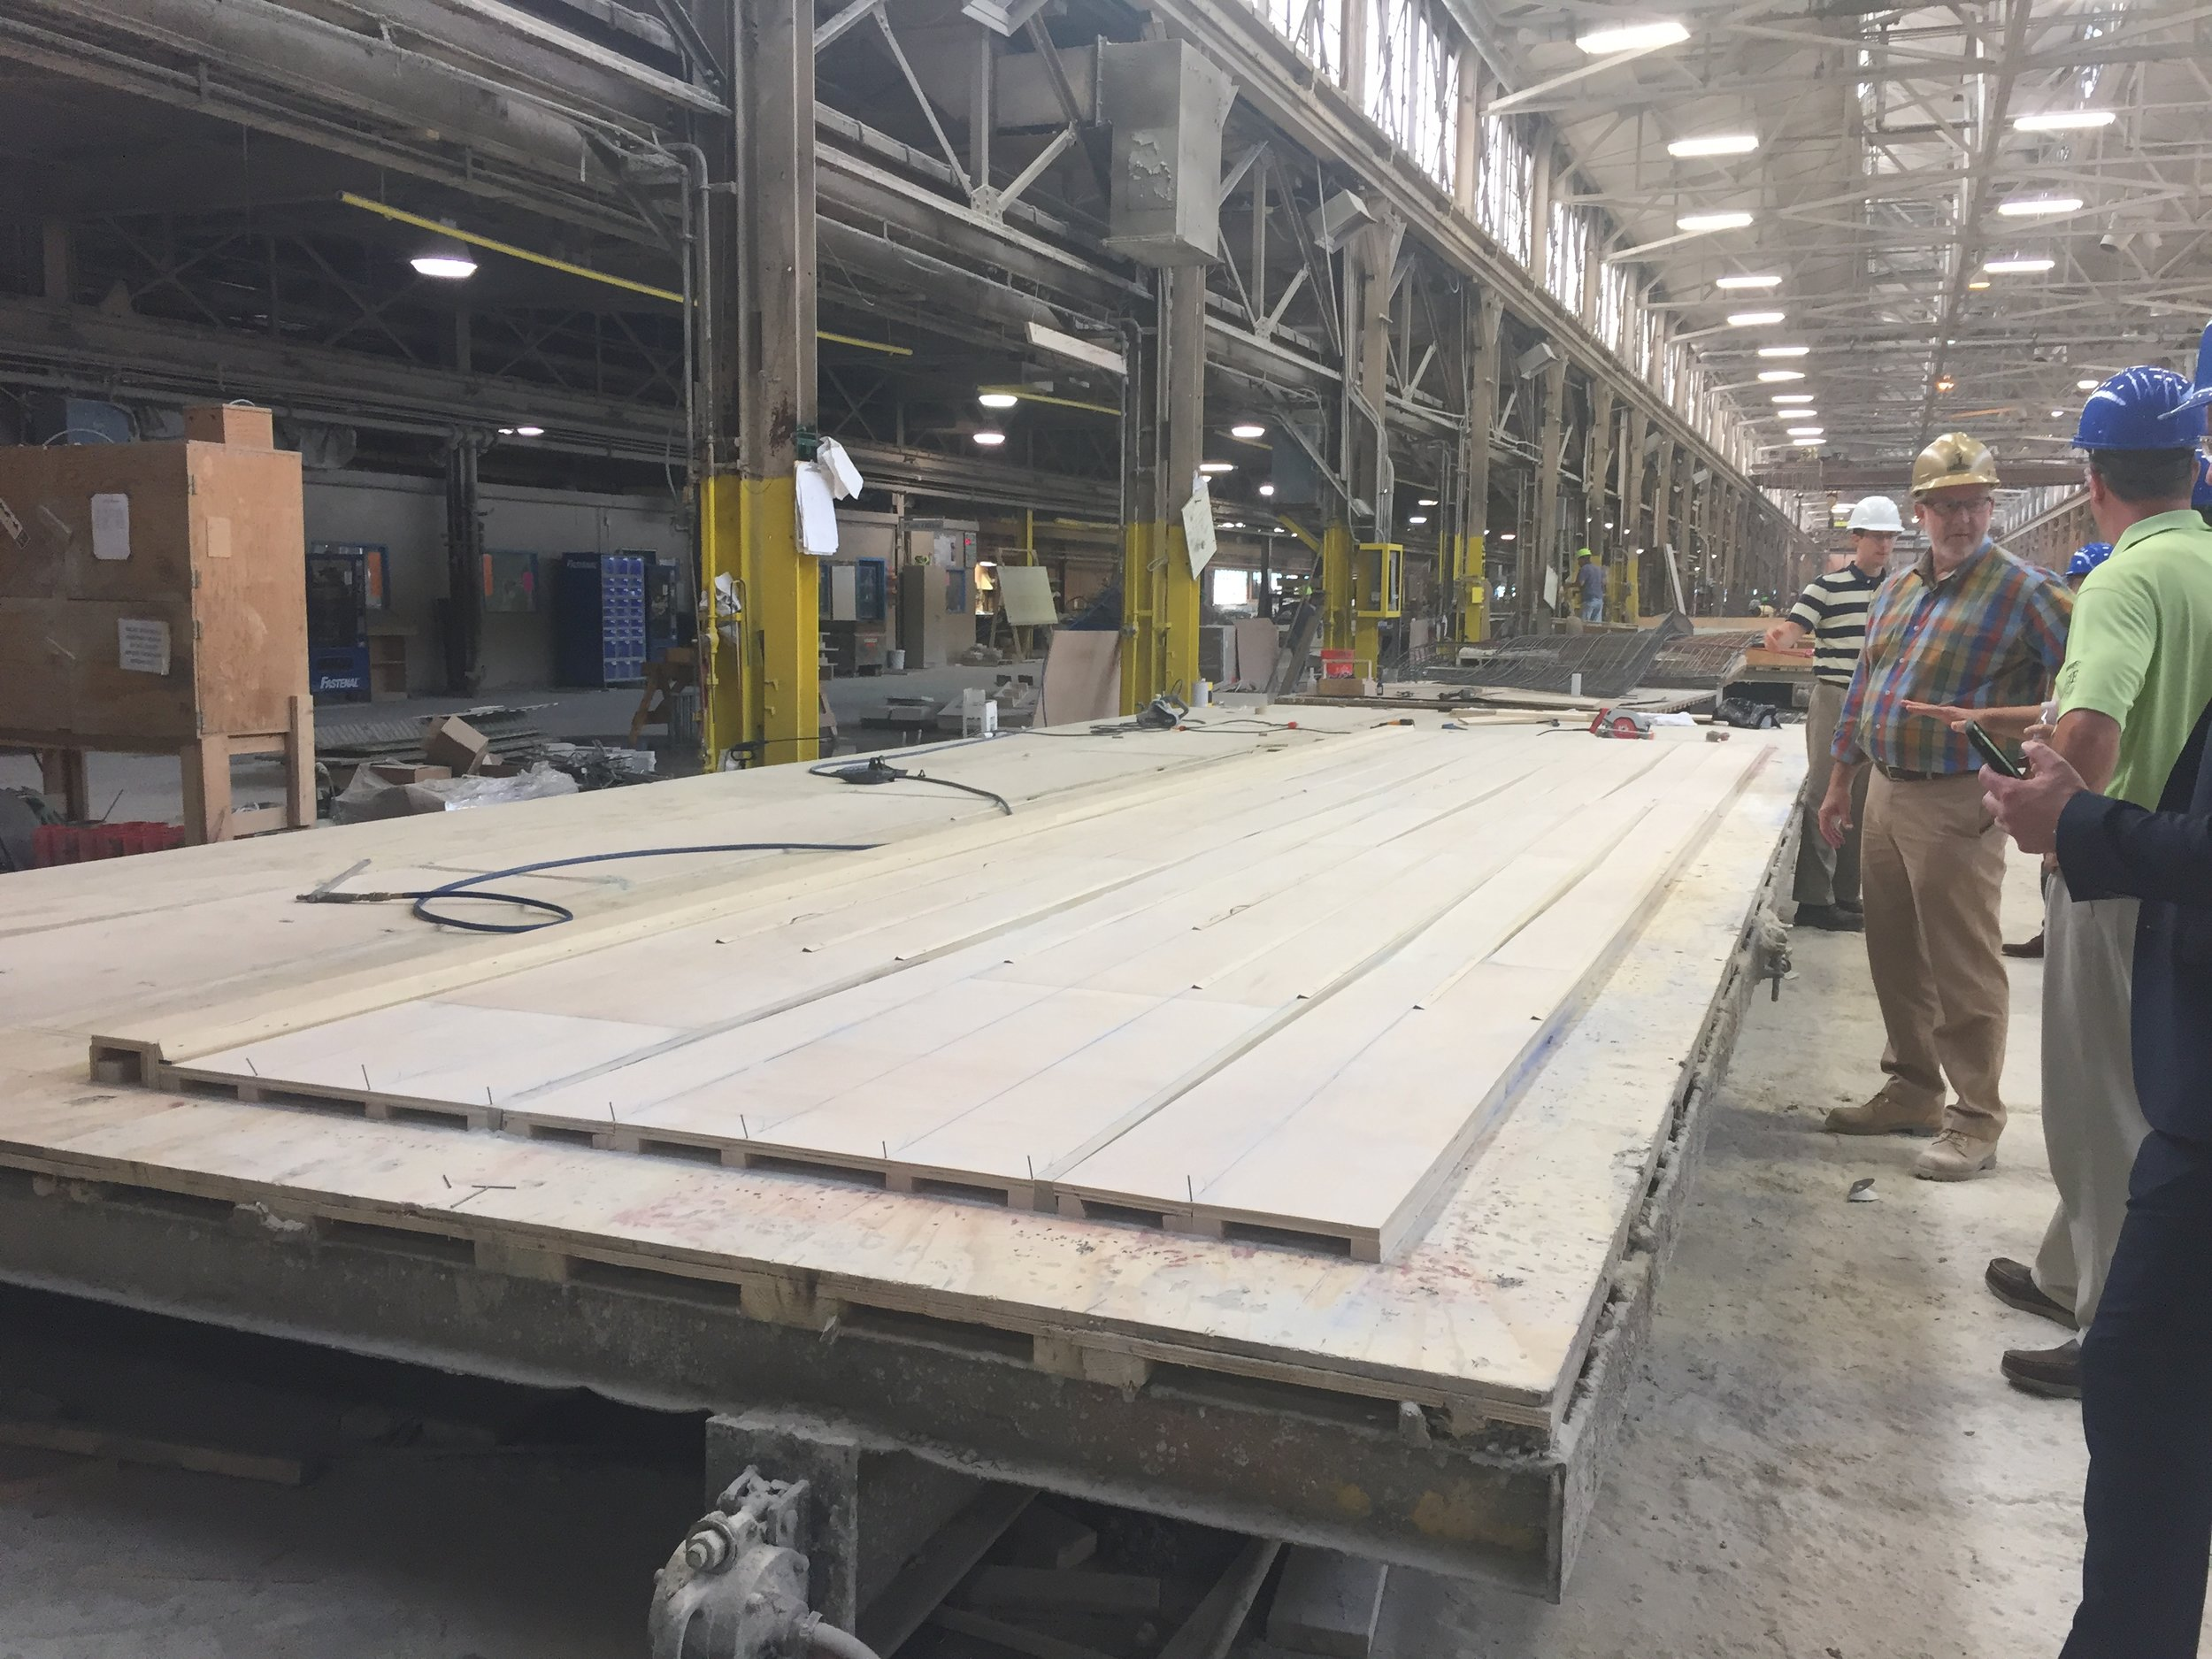 Wood molds for each panel were digitally design and hand constructed by Universal Concrete Products.